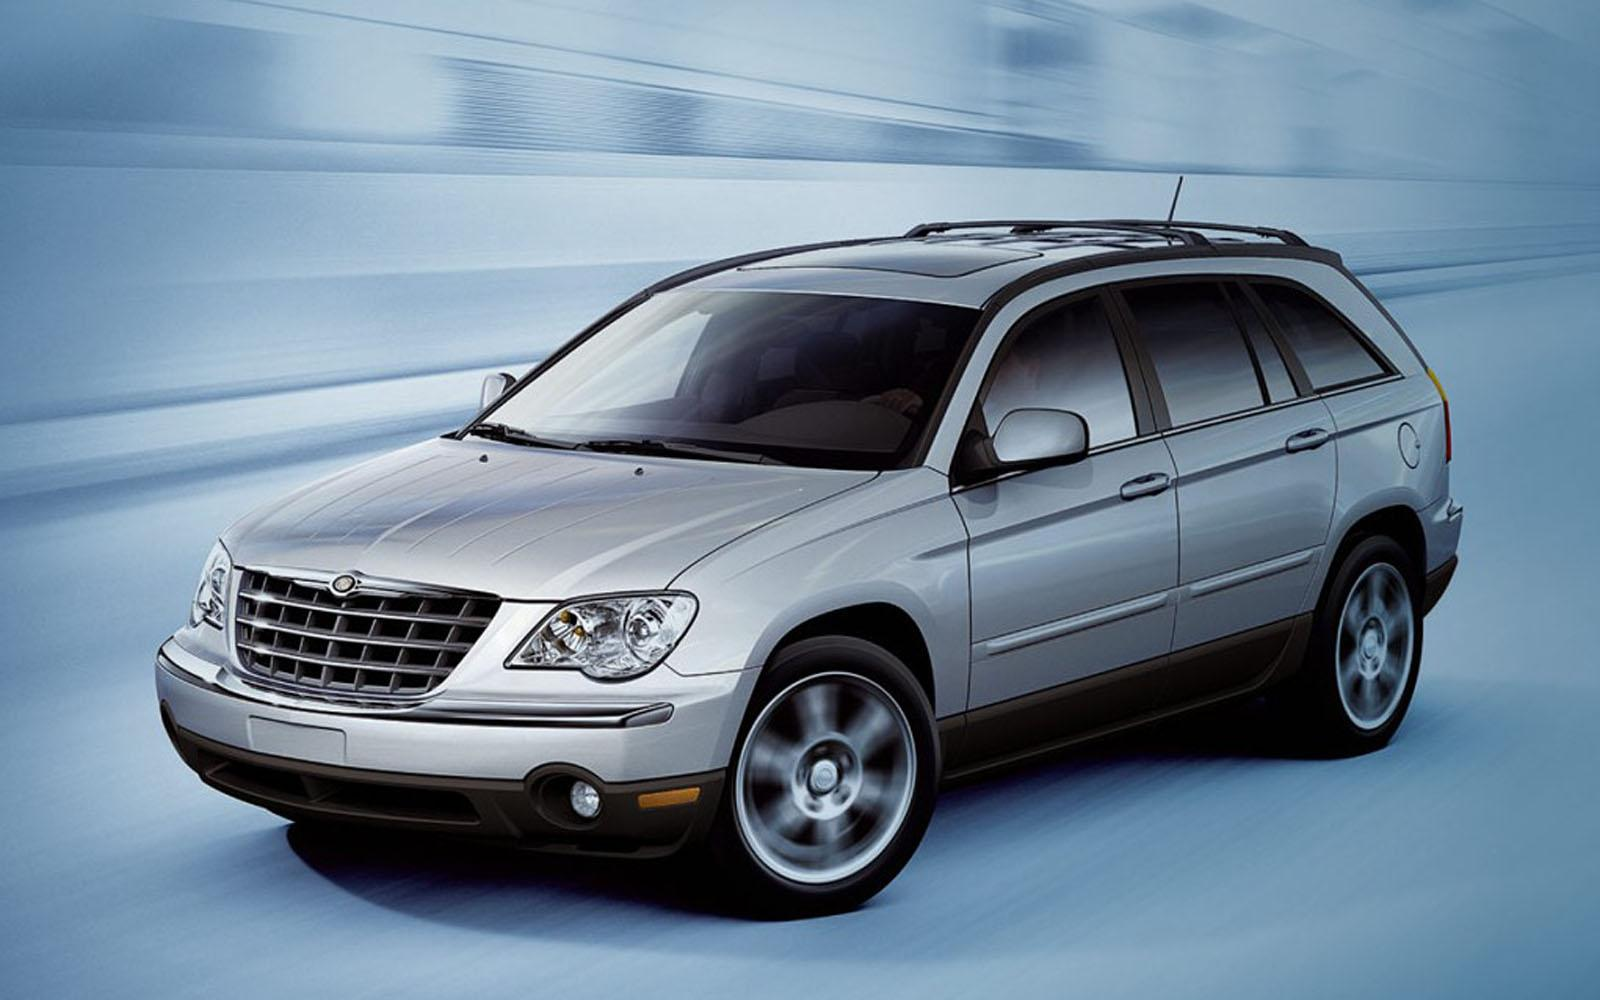 wallpaper: Chrysler Pacifica Cars Wallpapers